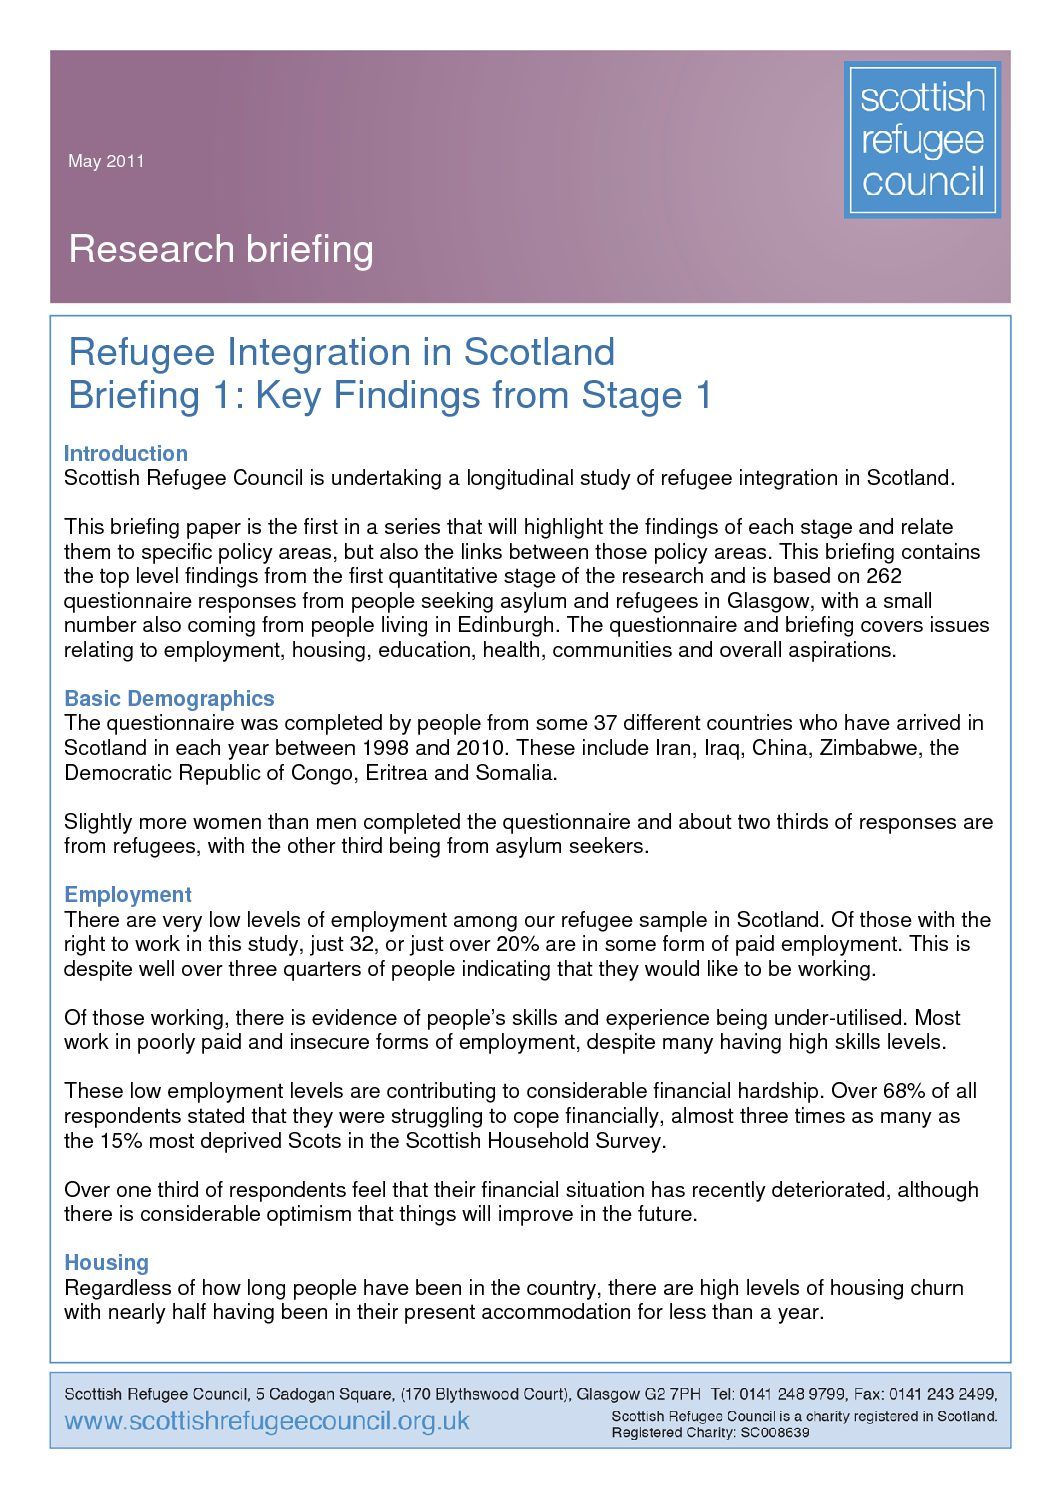 Refugee-Integration-in-Scotland-May-2011-pdf